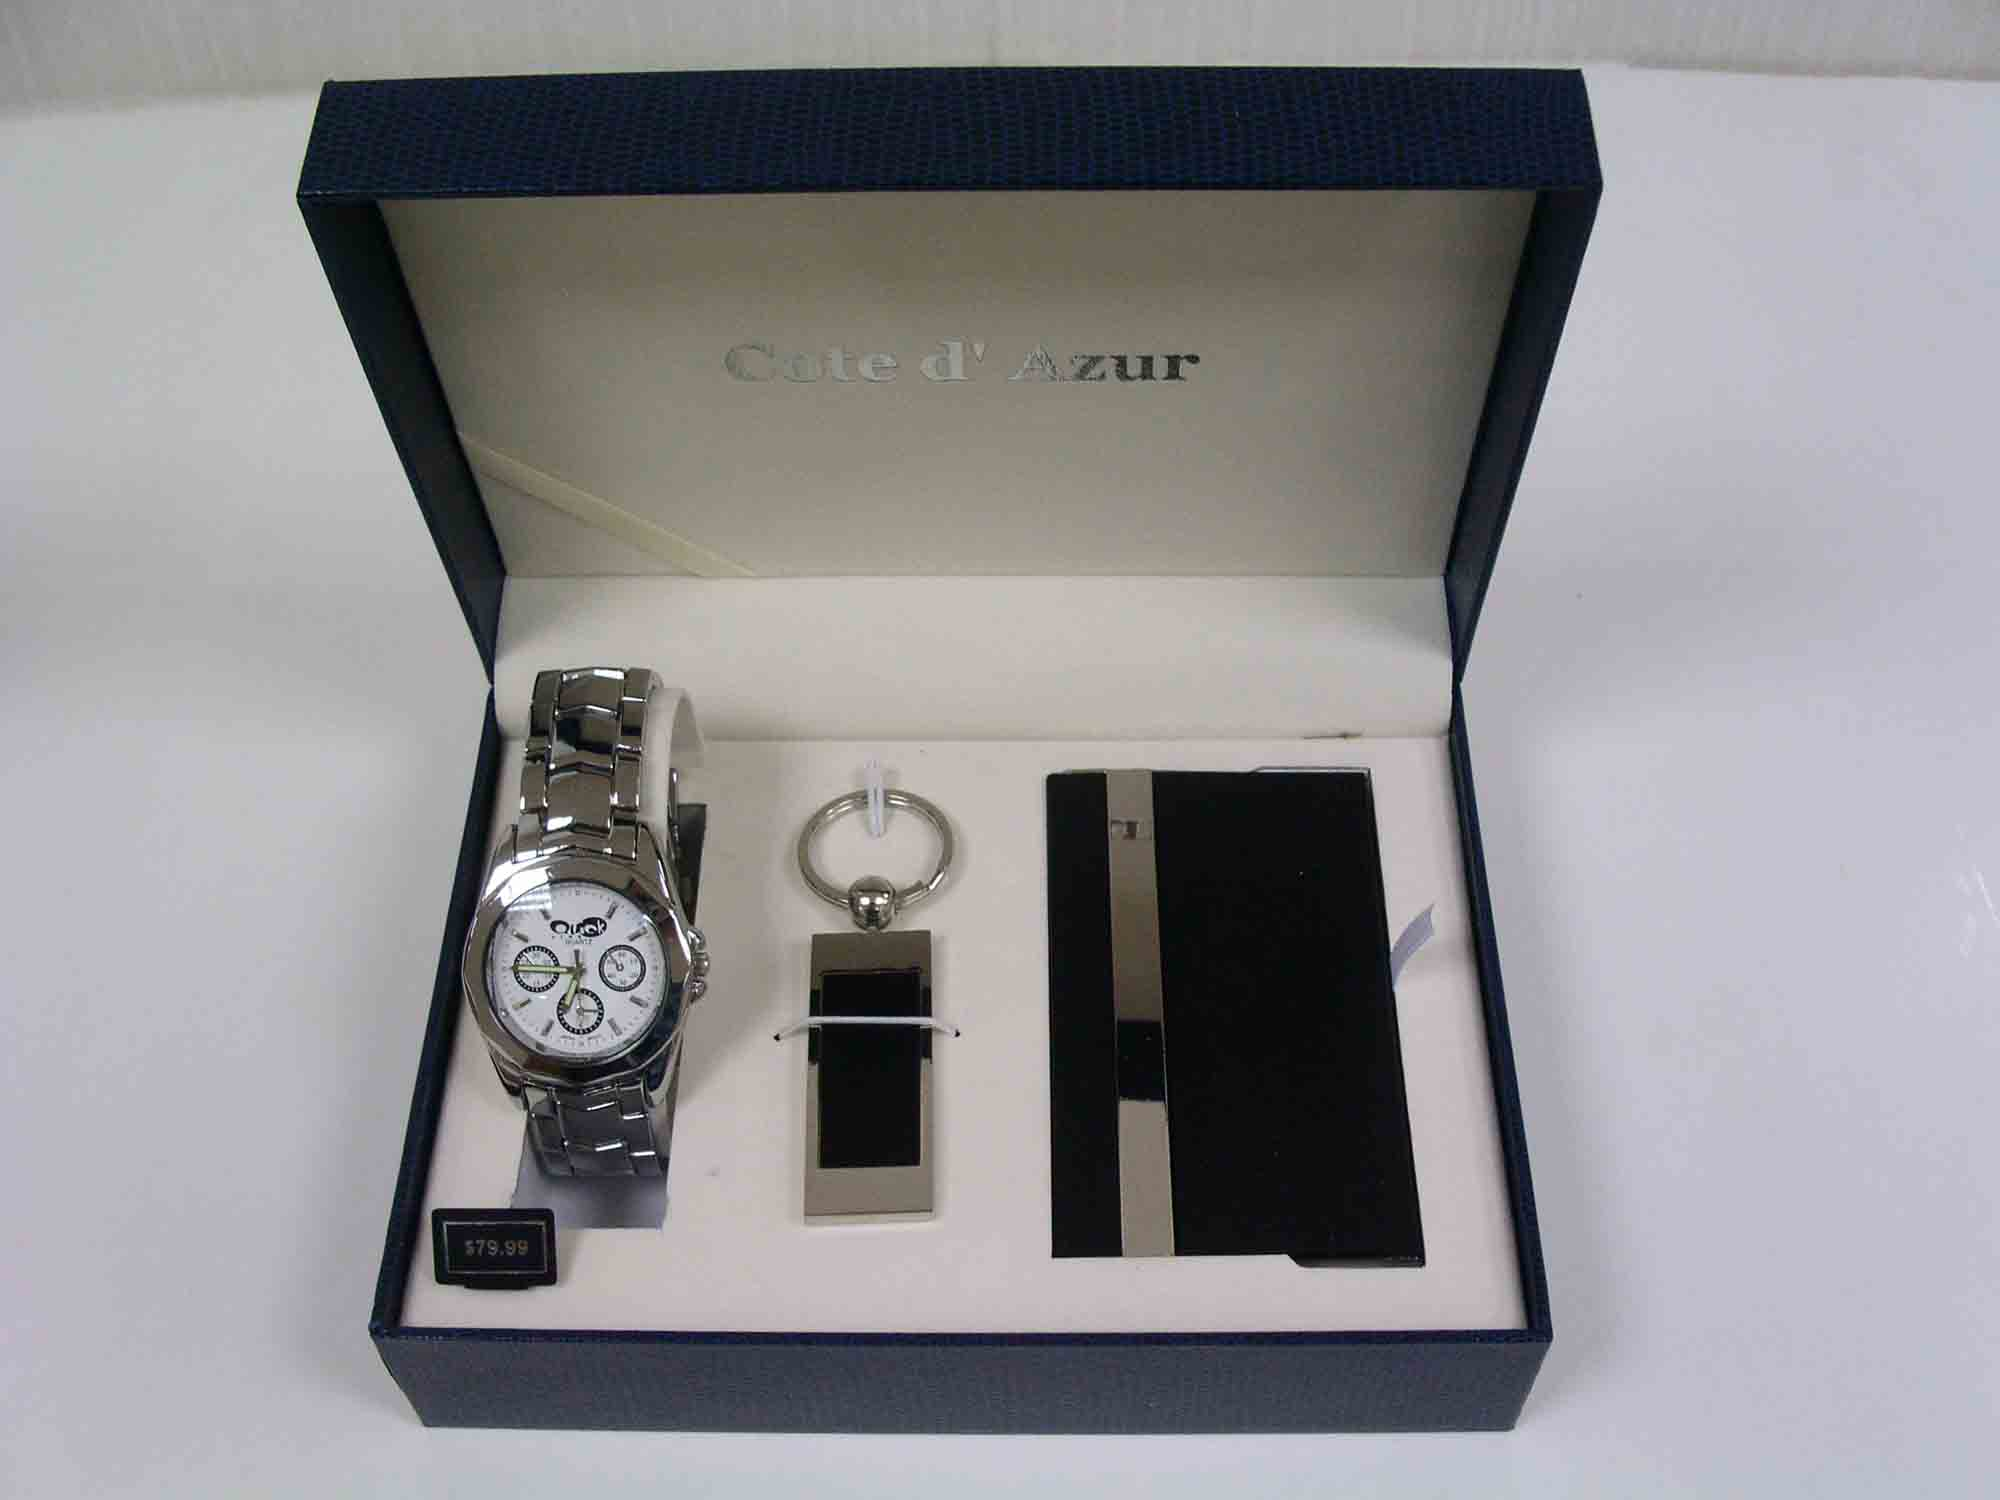 Watches & Gadgets : Giving a Wristwatch as a Gift